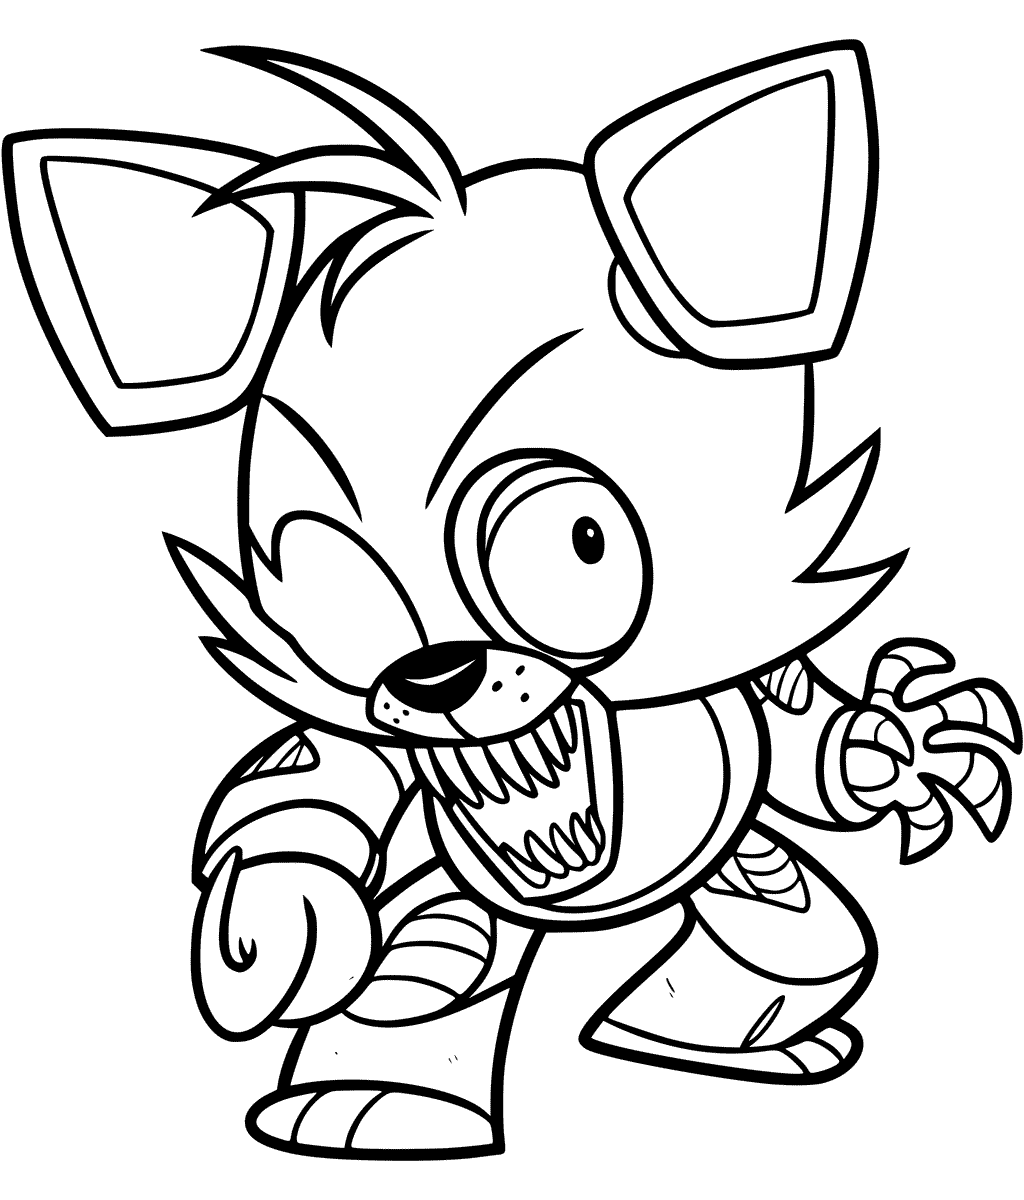 Foxy Coloring Page At GetDrawings